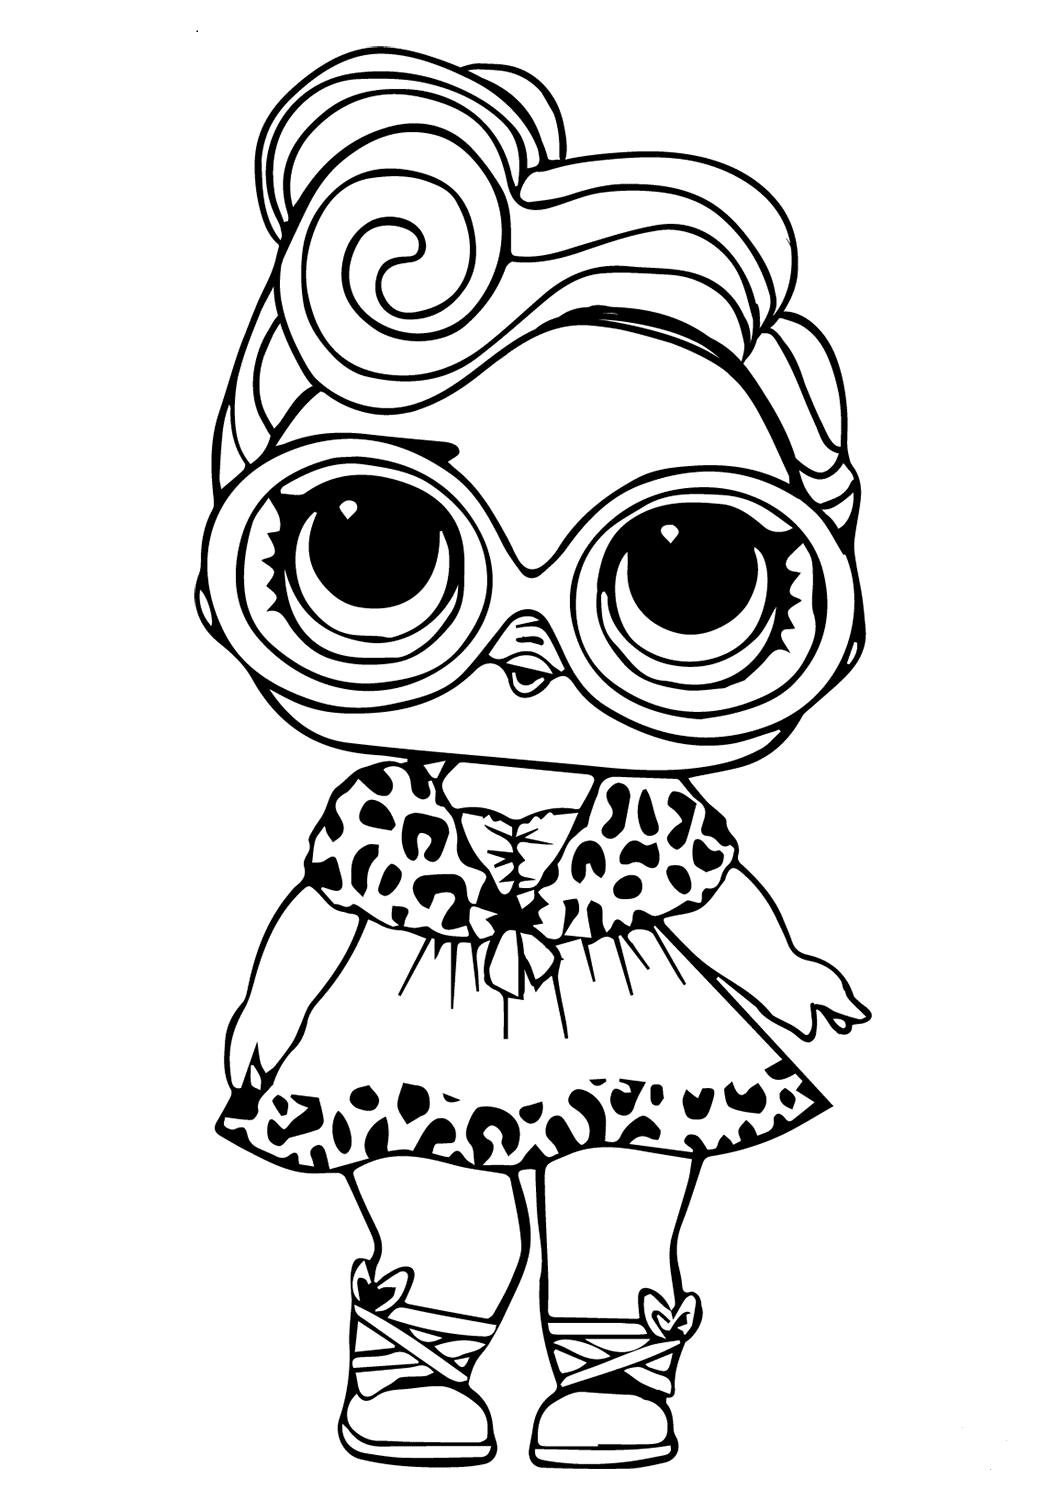 dolls colouring pages lol surprise dolls coloring pages print them for free pages dolls colouring